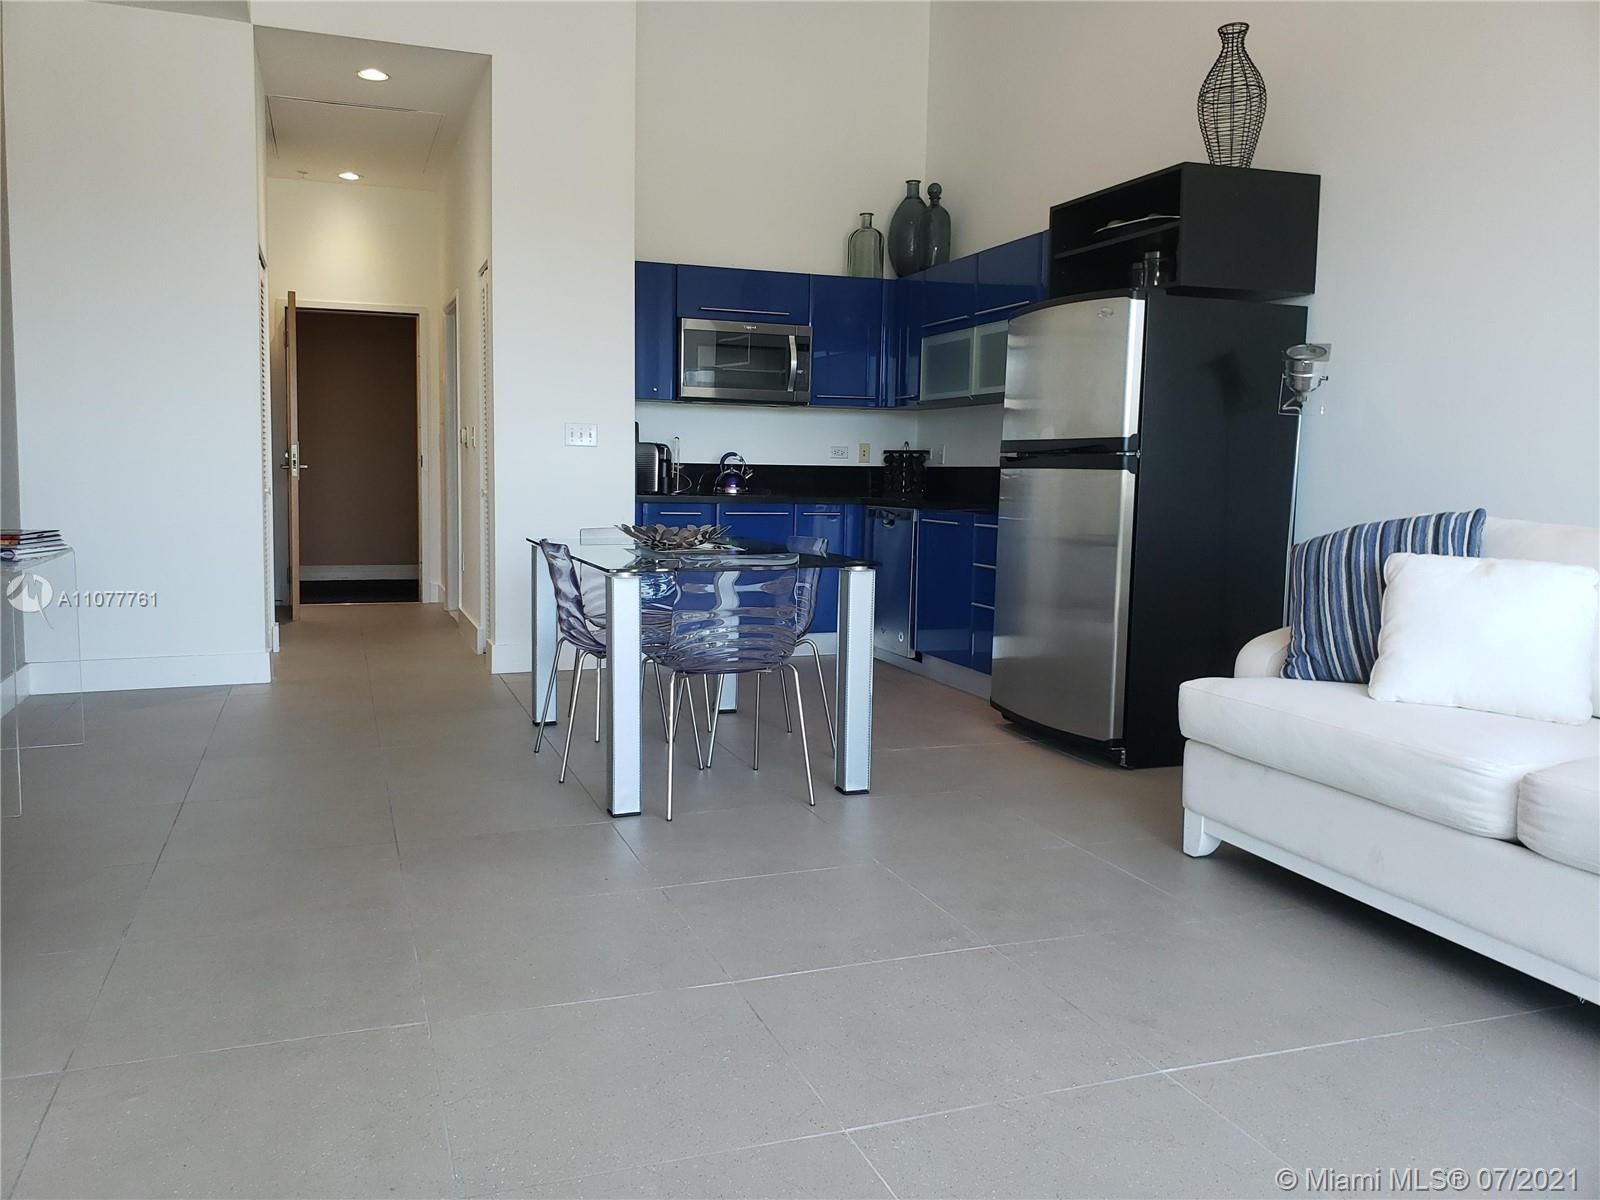 VERY NICE FURNISHED STUDIO at Vizcayne building; high ceiling, amazing blue kitchen, direct bay side